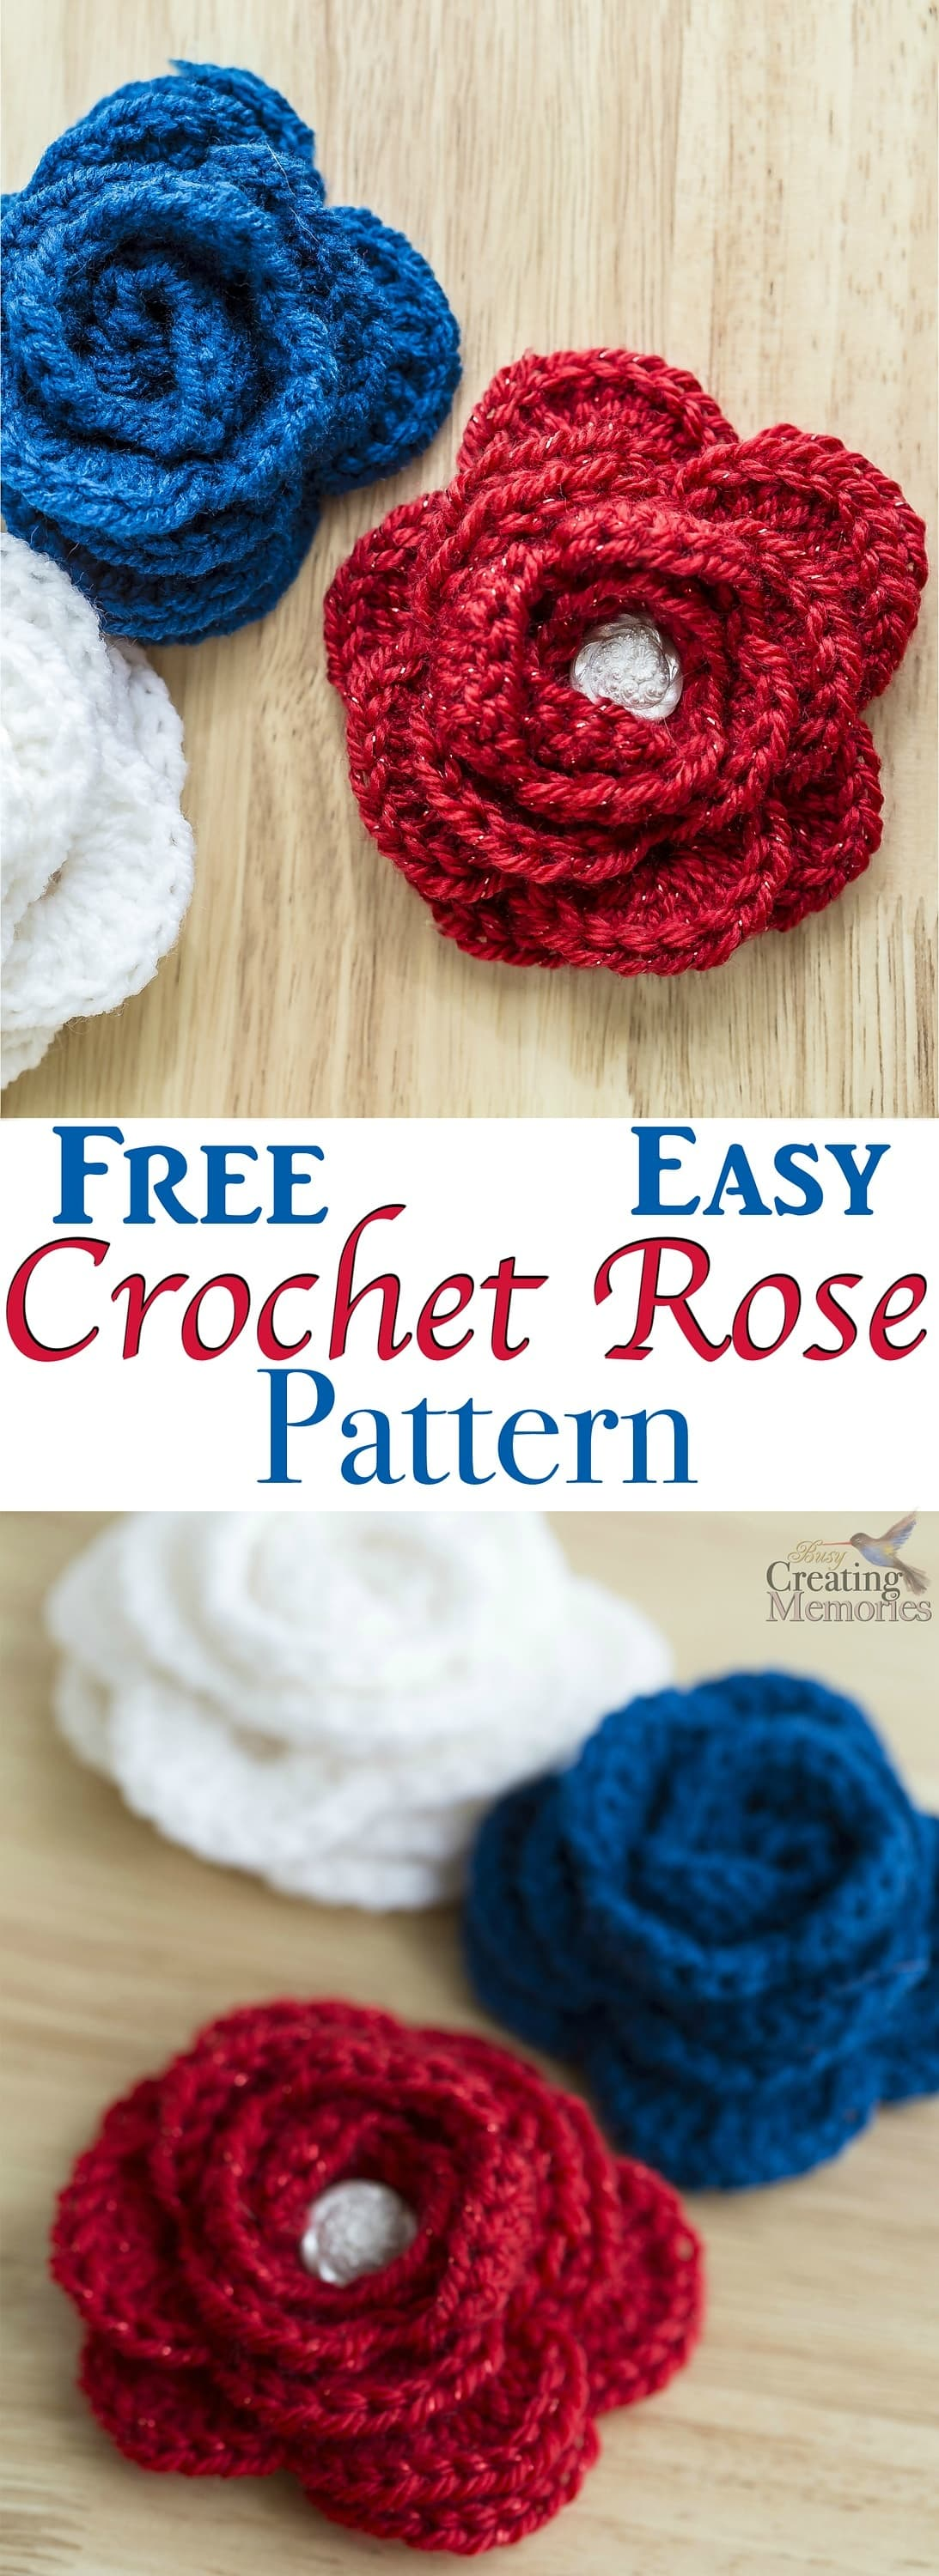 Free easy crochet rose pattern and video tutorial this free easy crochet rose pattern is the perfect project for beginner crochet with beautiful results baditri Image collections